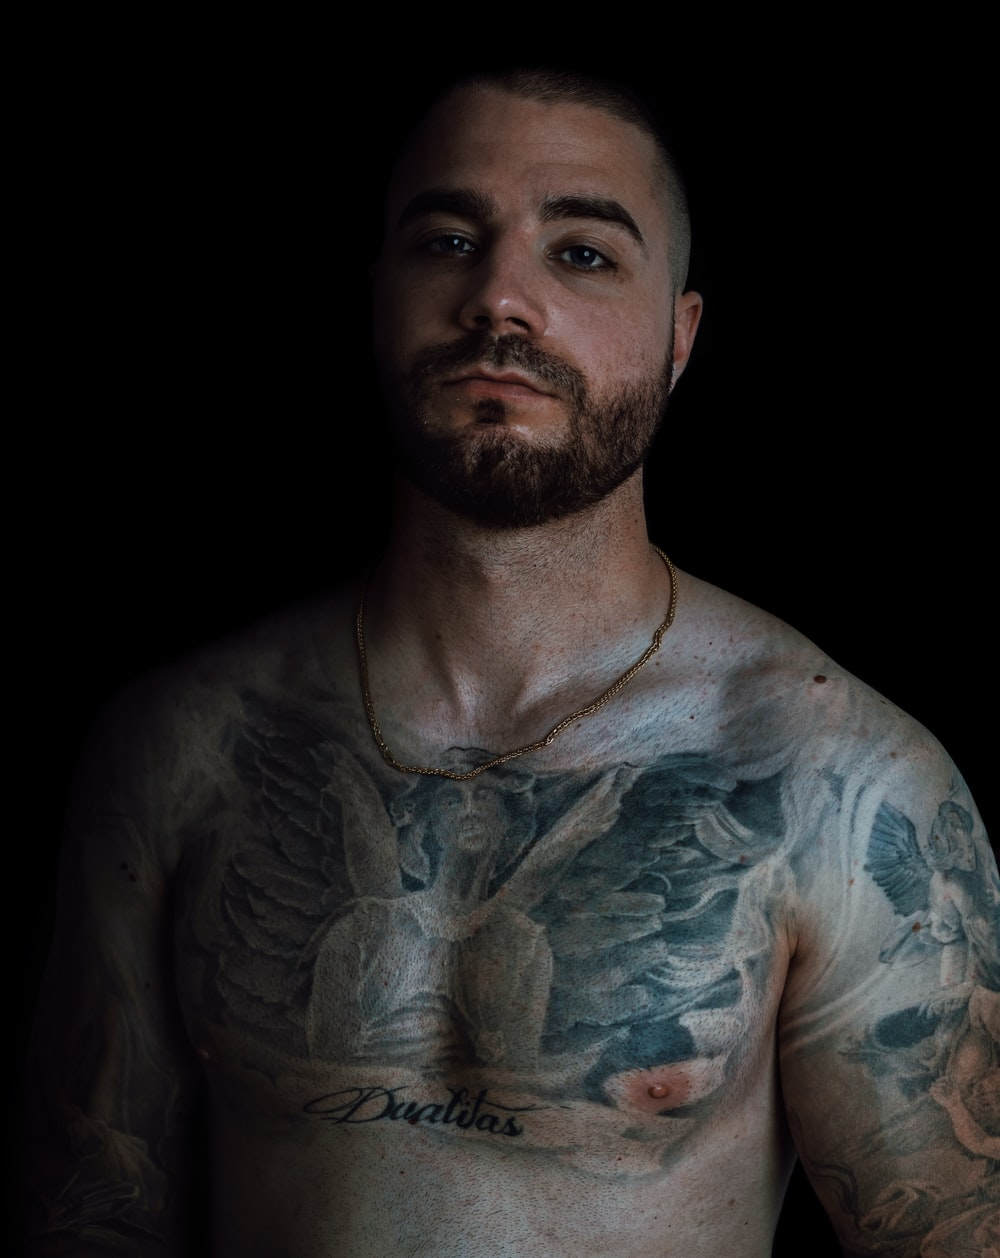 man with white and blue body tattoo